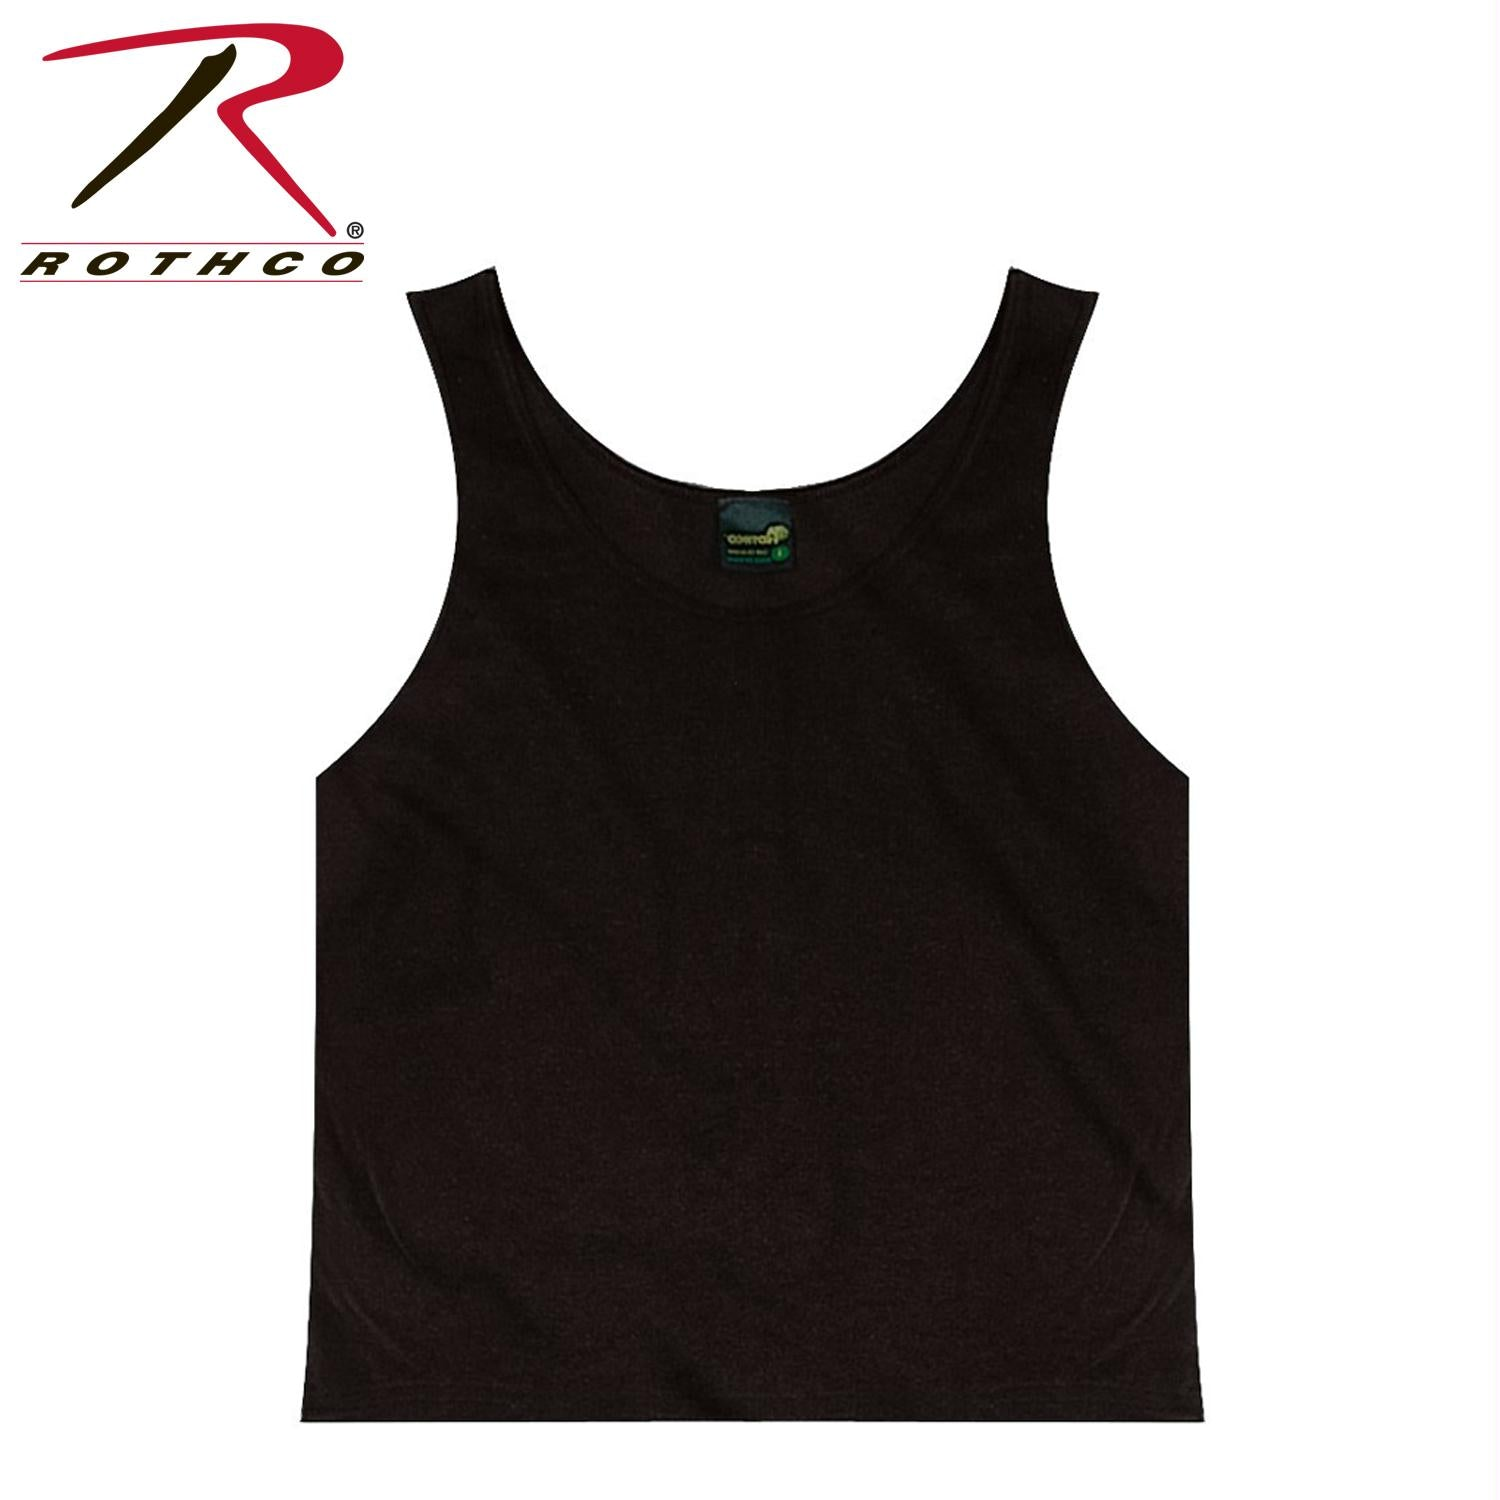 Rothco Tank Top - Black / L